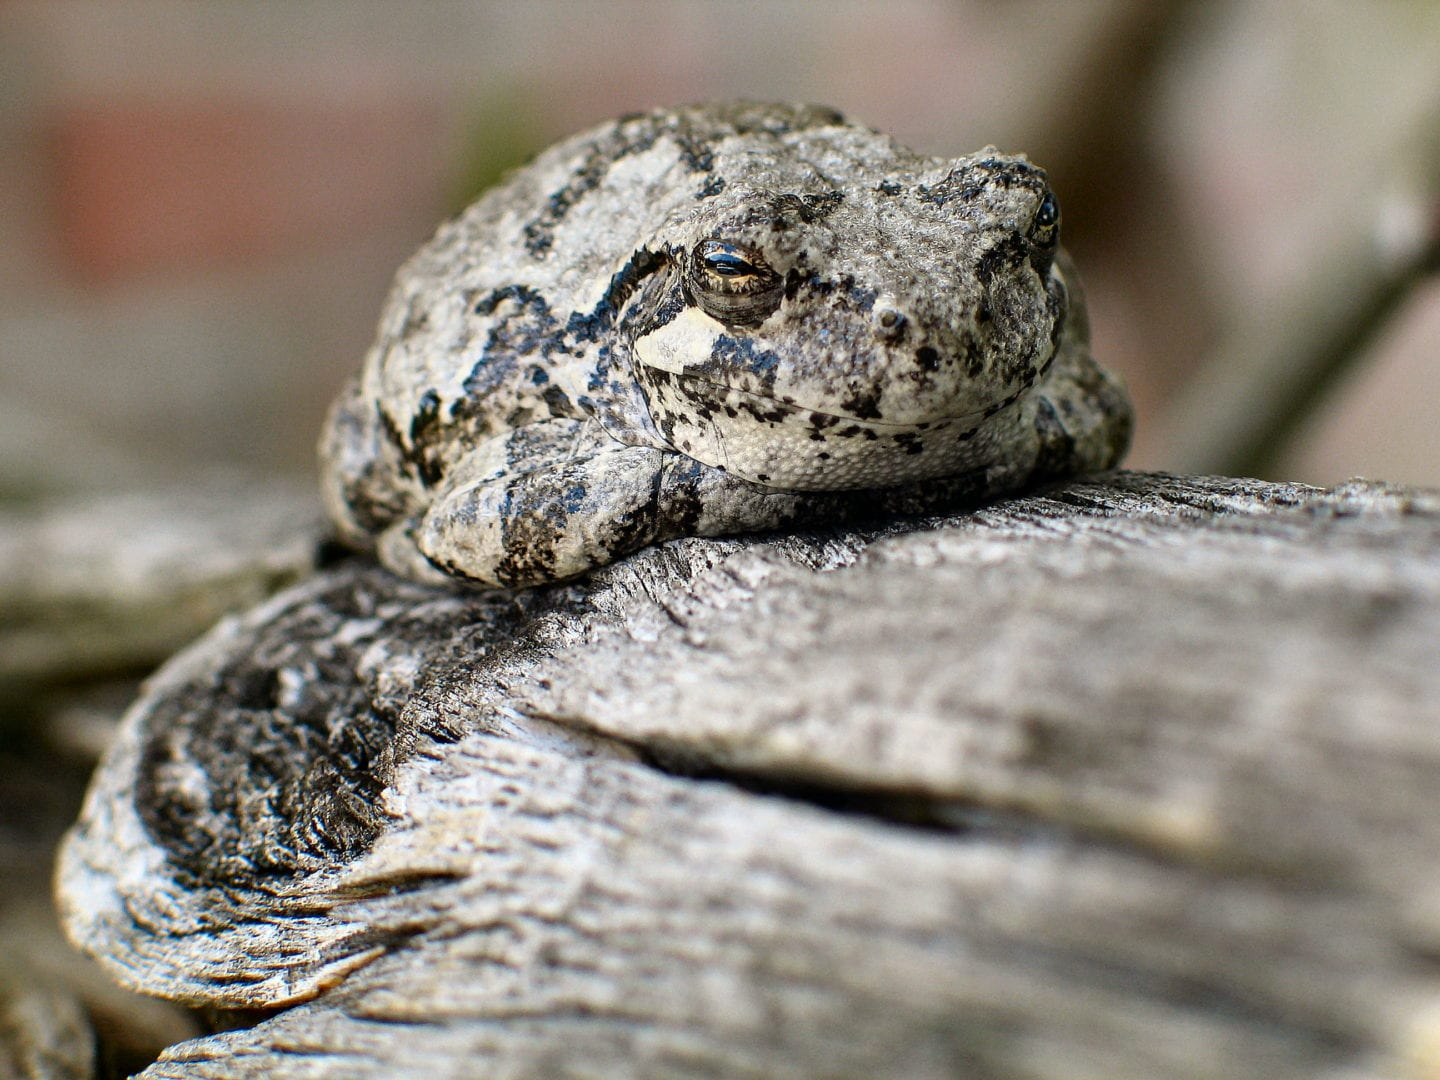 A toad resting